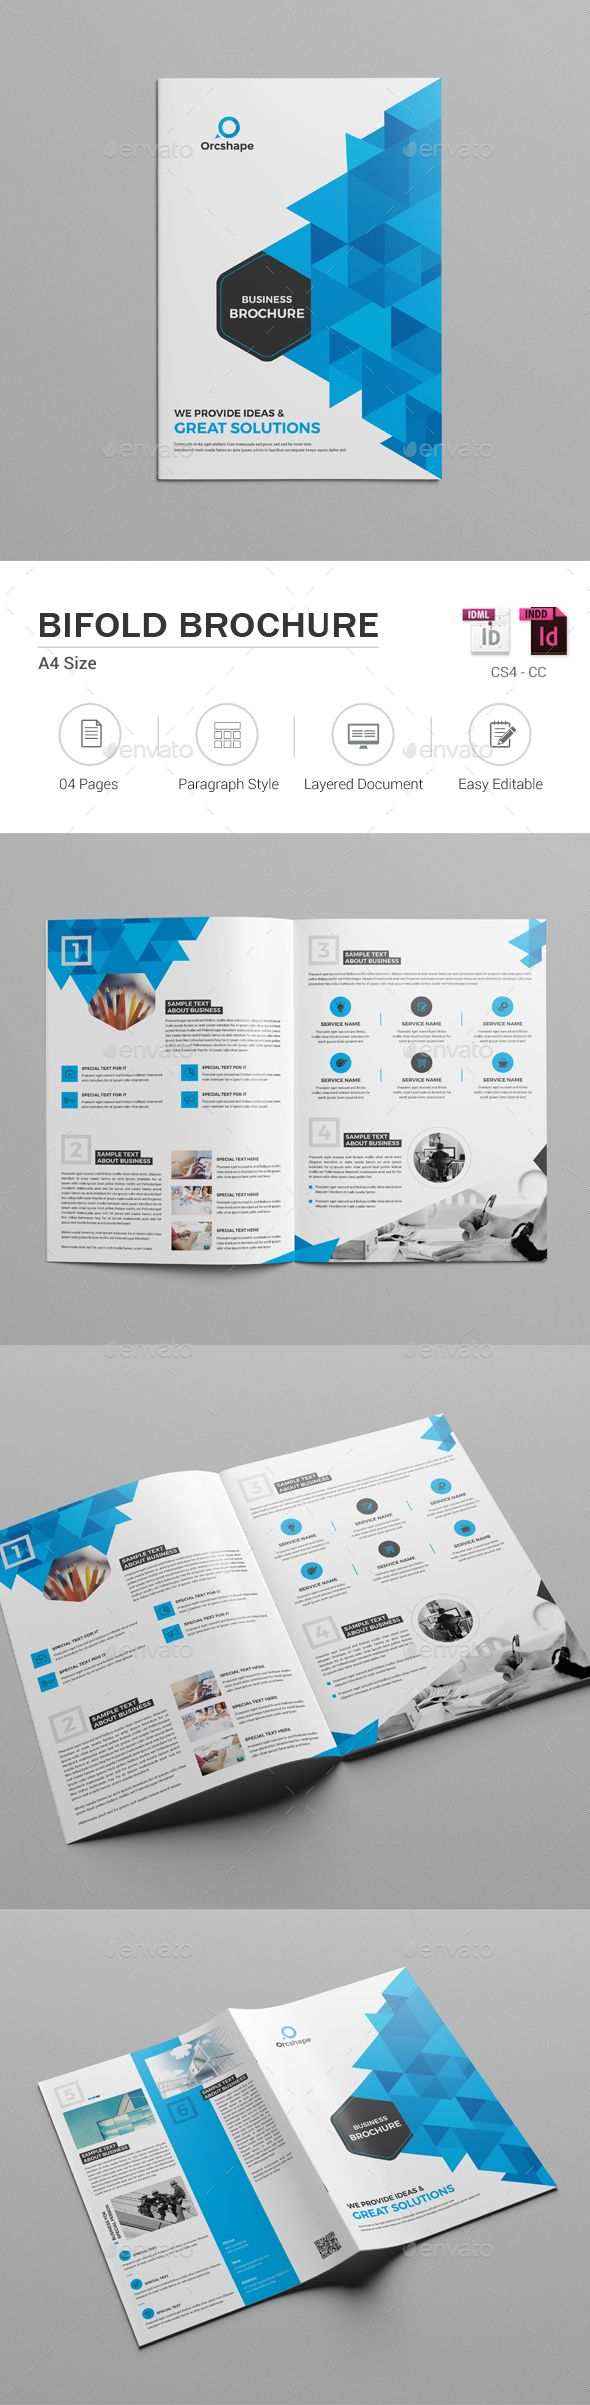 Bifold Brochure Corporate Bifold Brochure Template can be used for any business purpose or others sector. This template is perfect for your business promotion, so you can easily capture the attention of your clients. Also, you can use this template as newspaper, magazine etc.